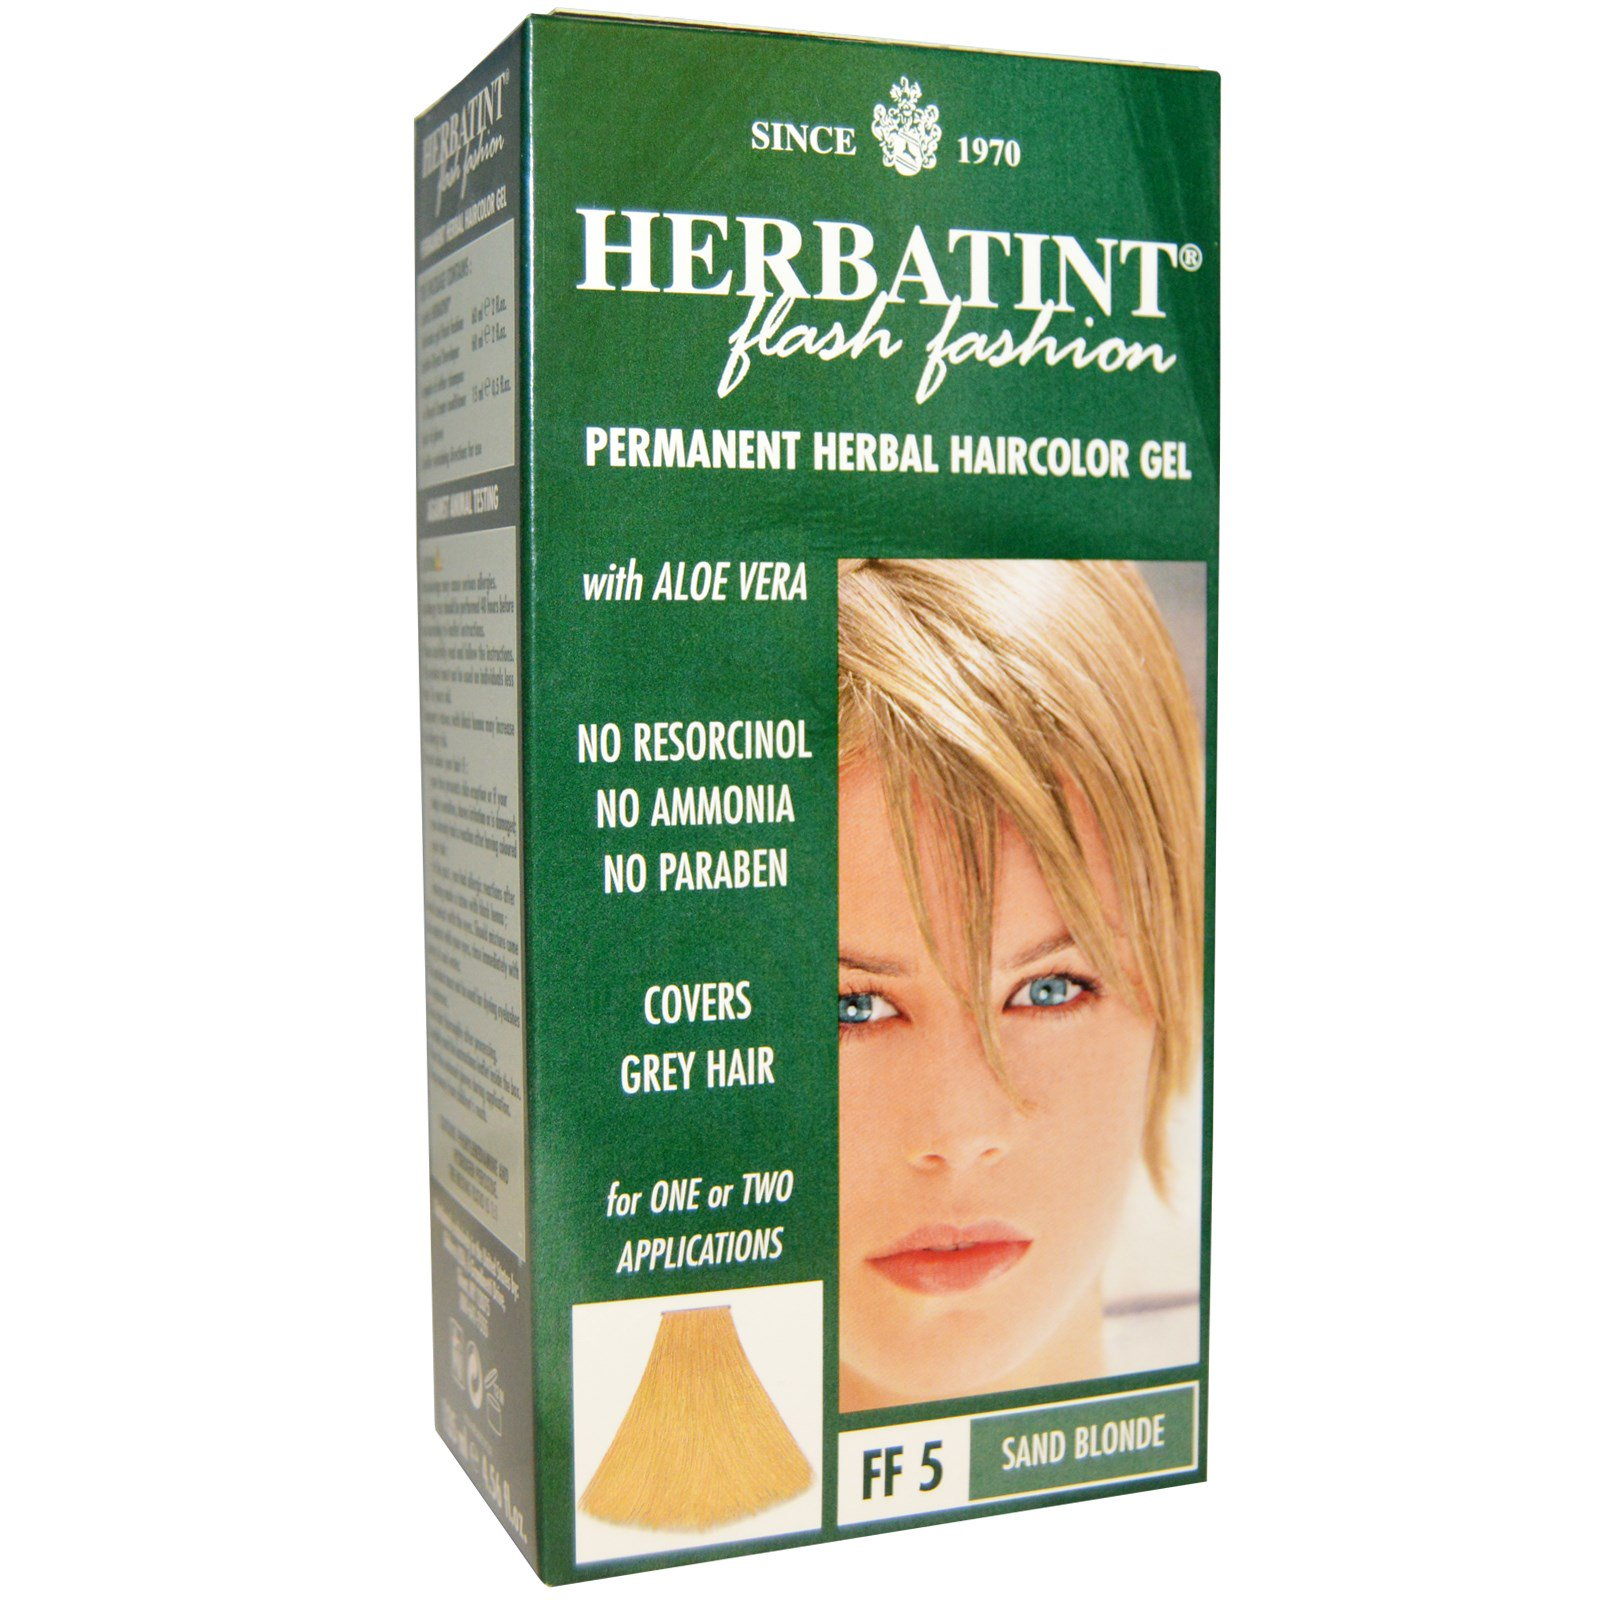 Herbatint Permanent Herbal Haircolor Gel Ff 5 Sand Blonde 456